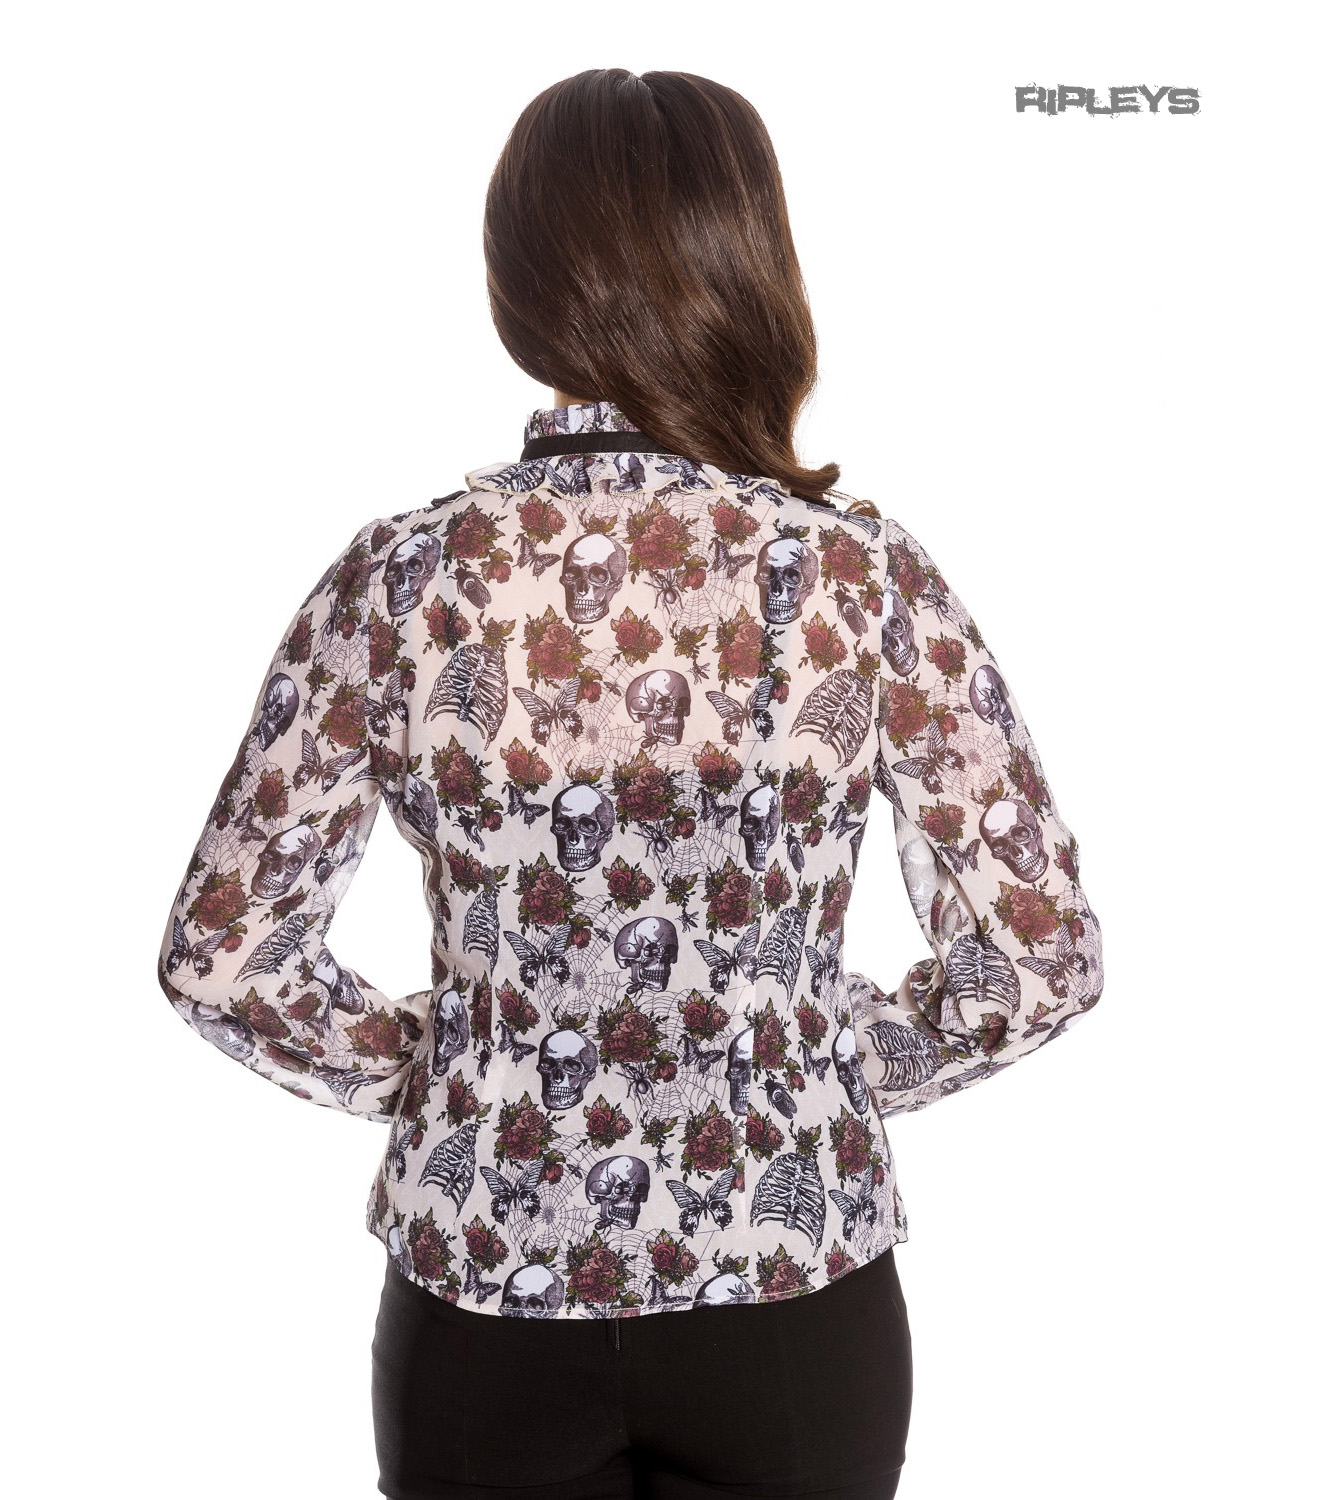 Hell-Bunny-Chiffon-Shirt-Top-Gothic-Skulls-Roses-GRISELDA-Blouse-Ivory-All-Sizes thumbnail 4